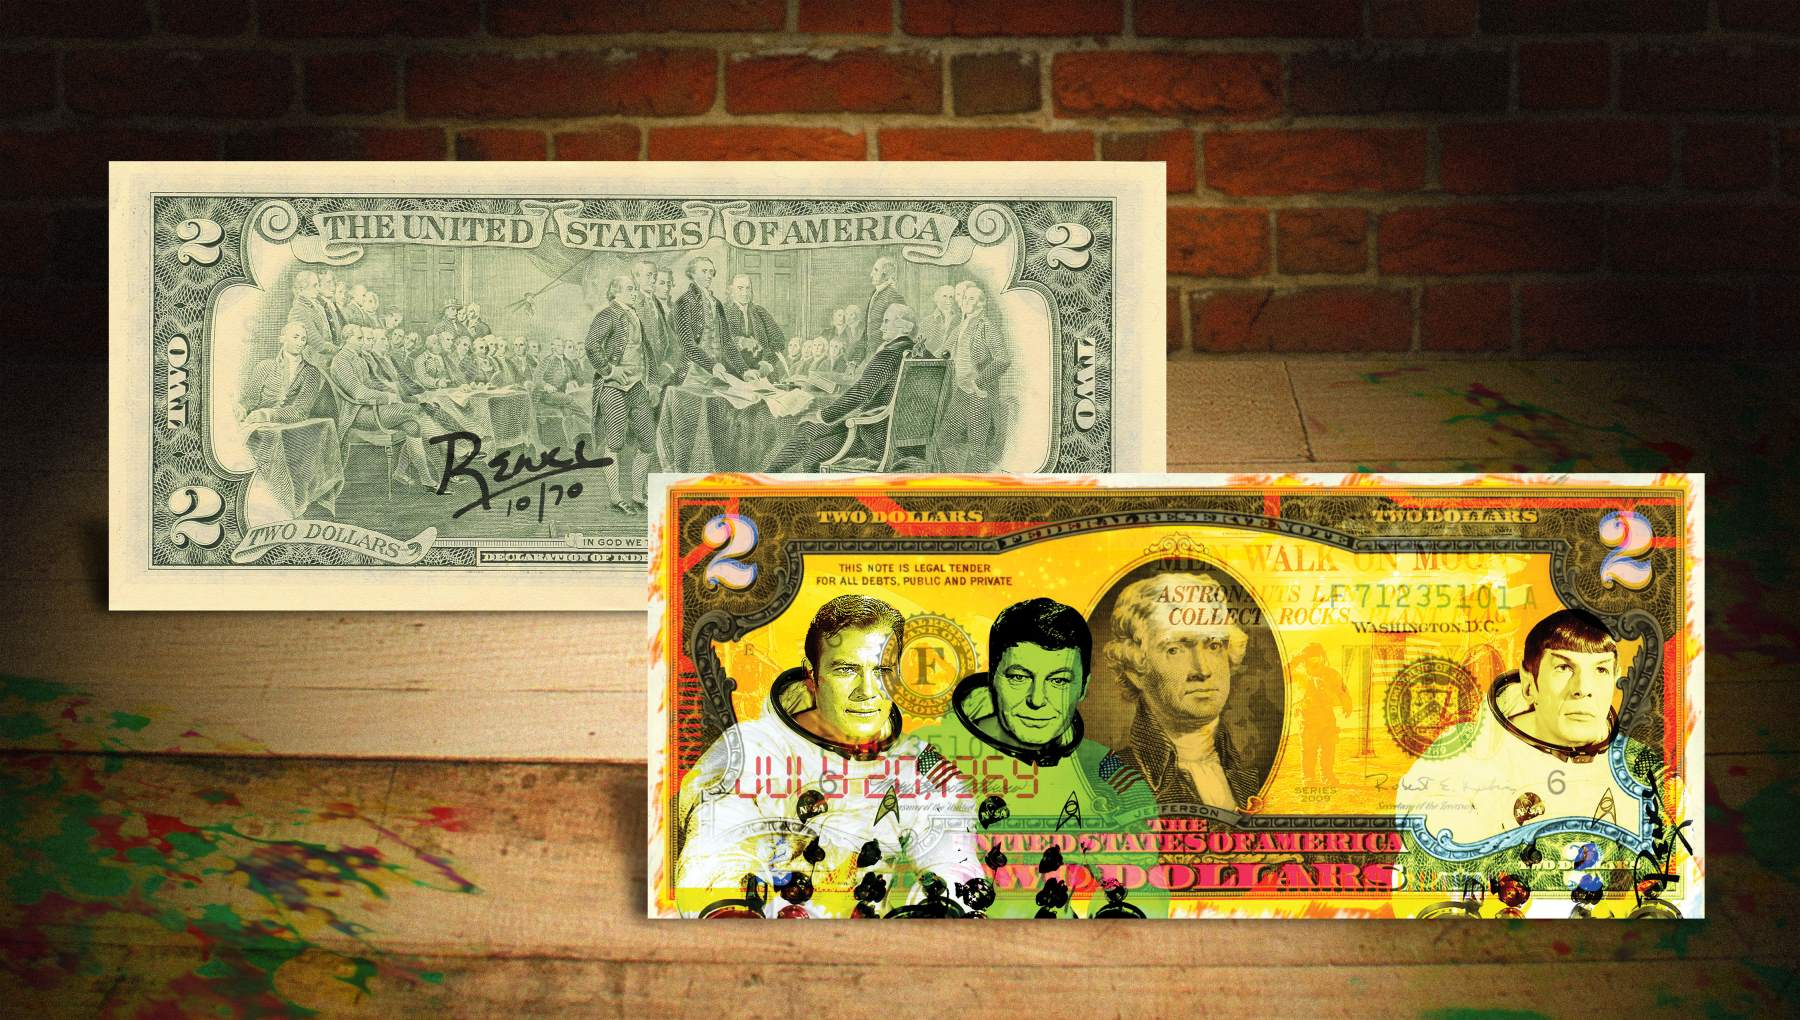 STAR TREK YELLOW Rency / Banksy Apollo 11 NASA Street Art on $2 Bill ...